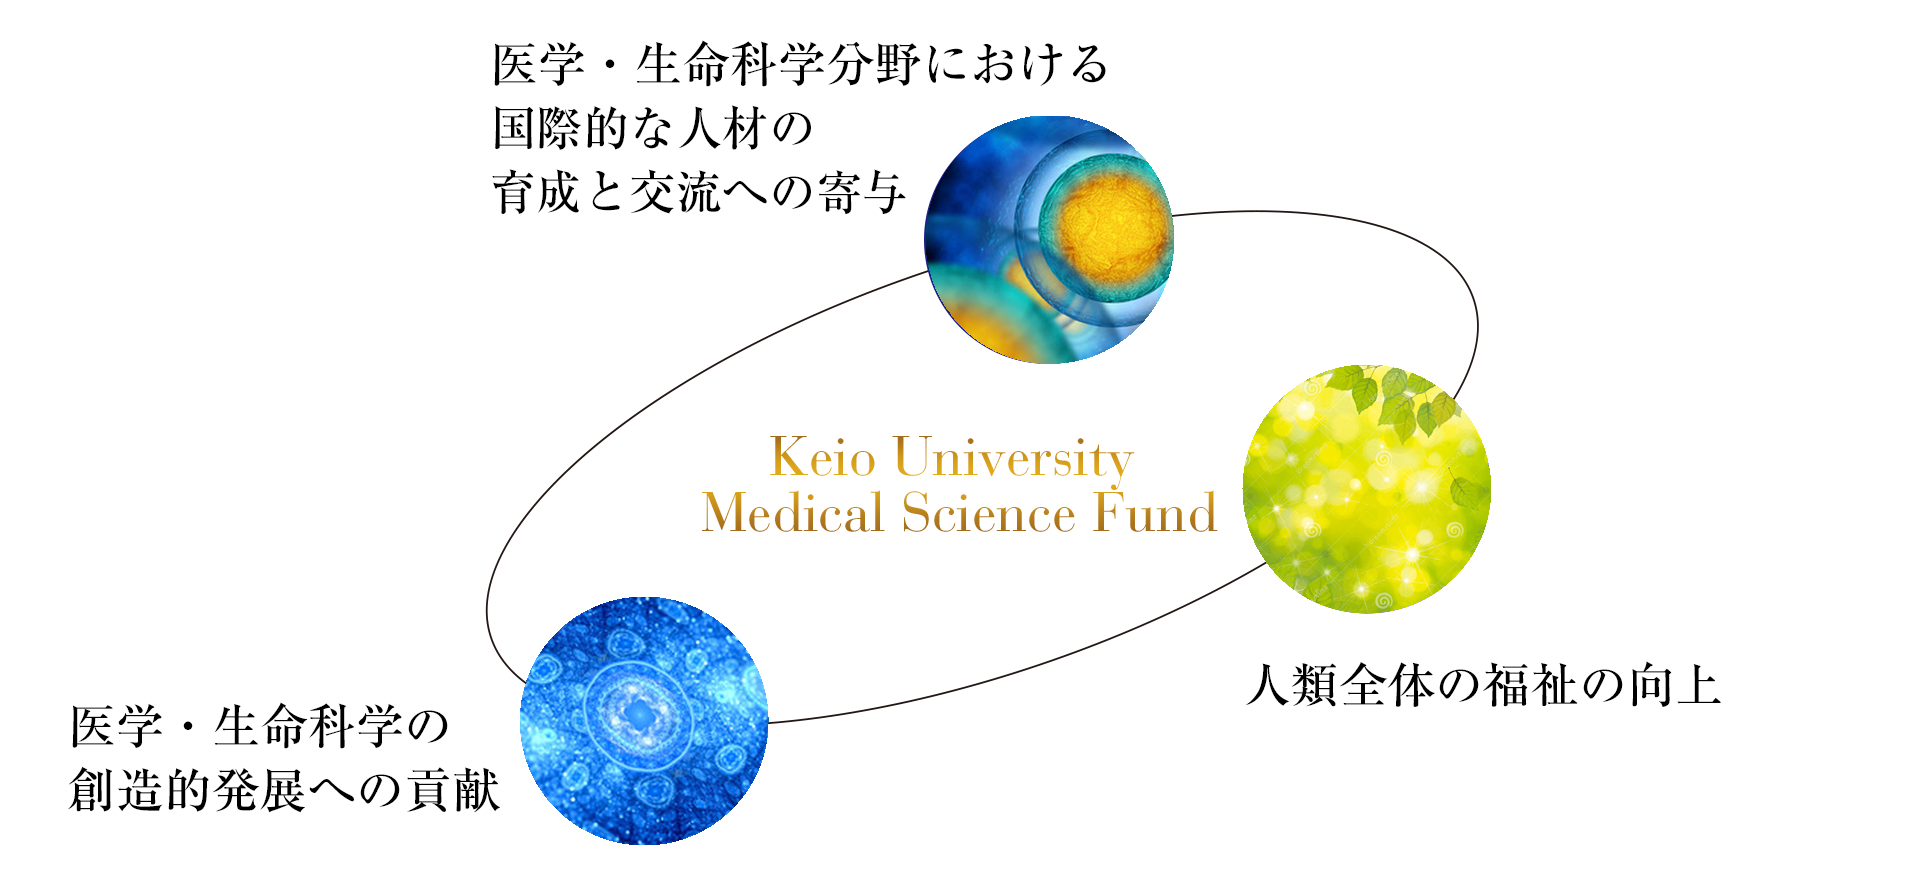 Medical Science Fund